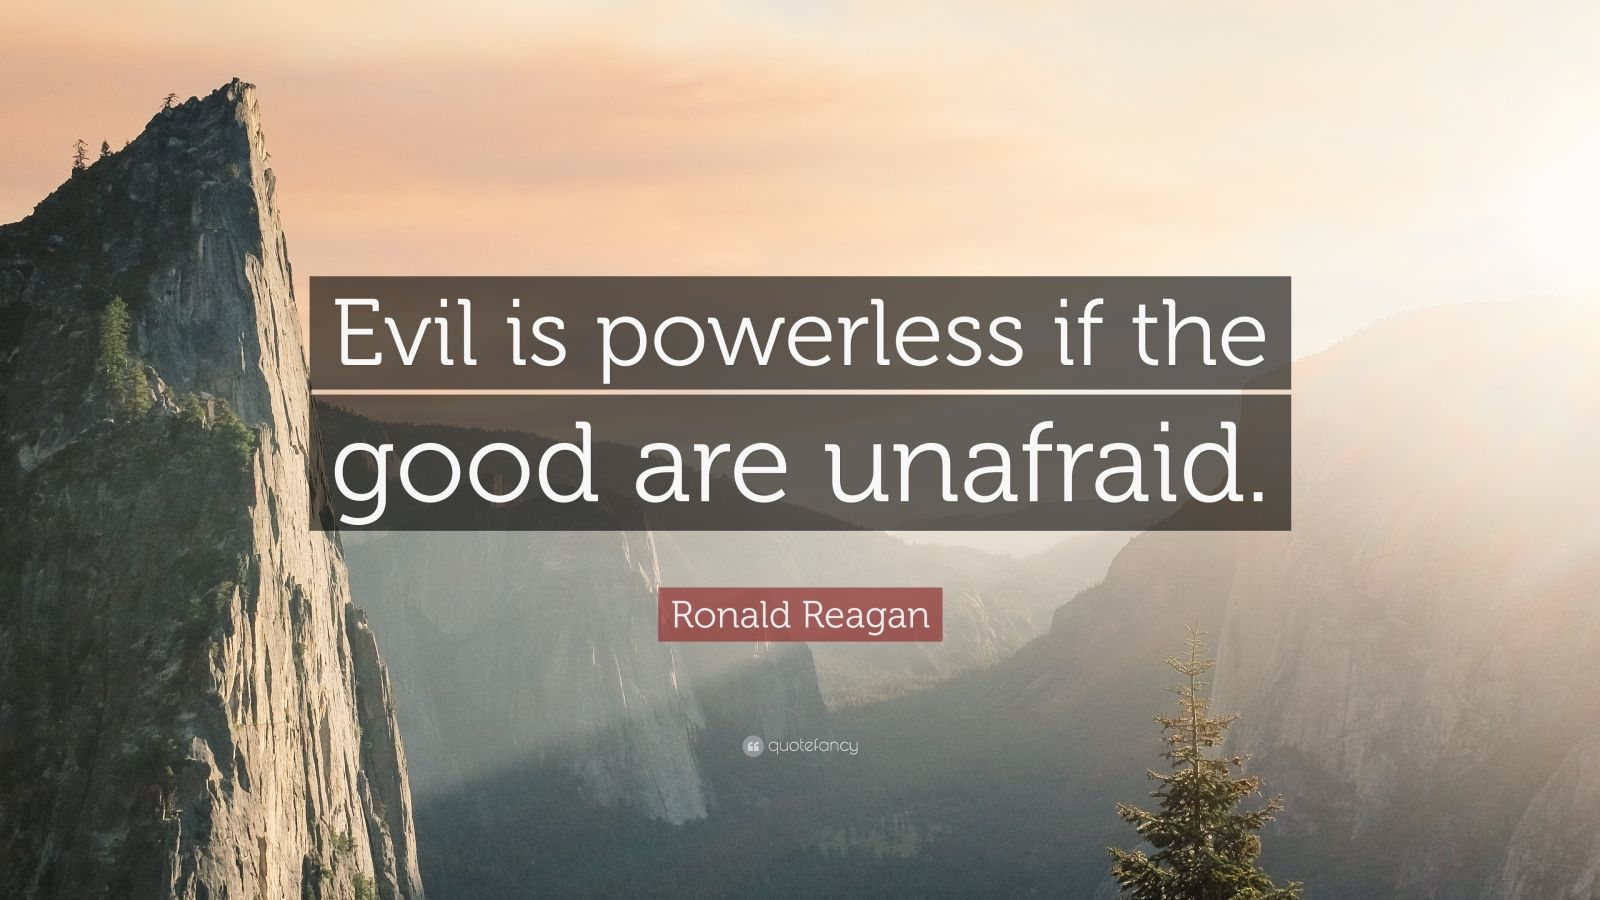 Conor Mcgregor Quote Wallpaper Ronald Reagan Quote Evil Is Powerless If The Good Are